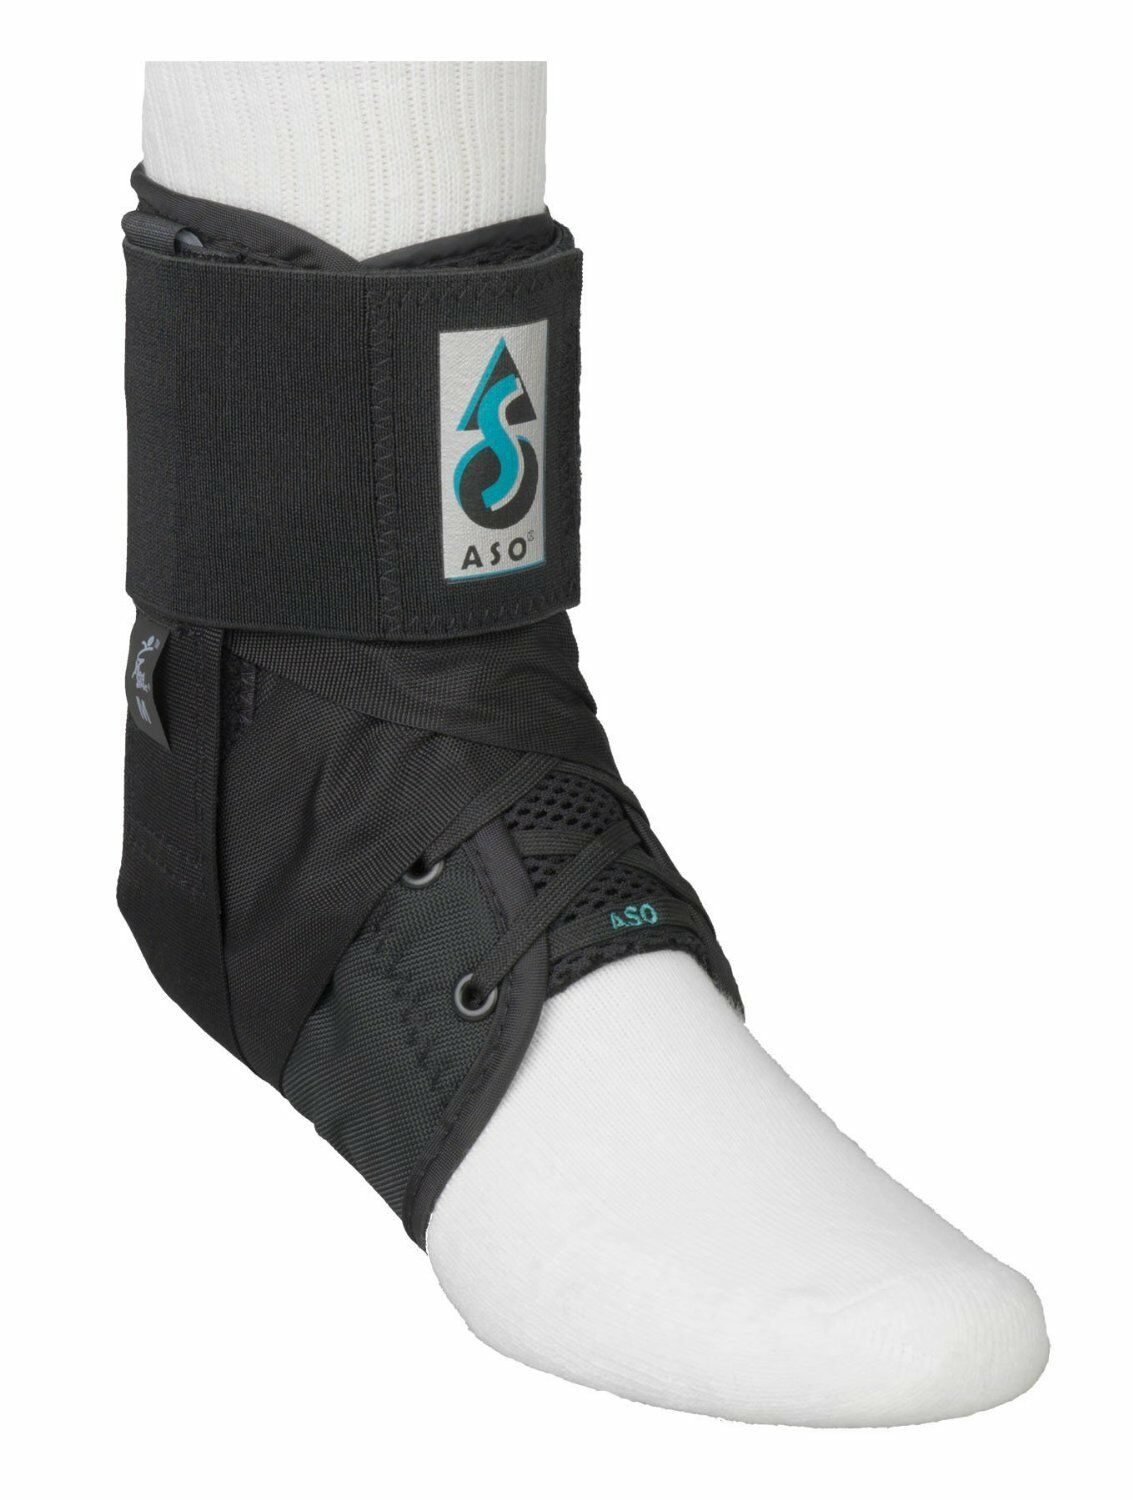 ASO Ankle Stabilising Orthosis & Stays, ankle support, ankle brace, ankle strap